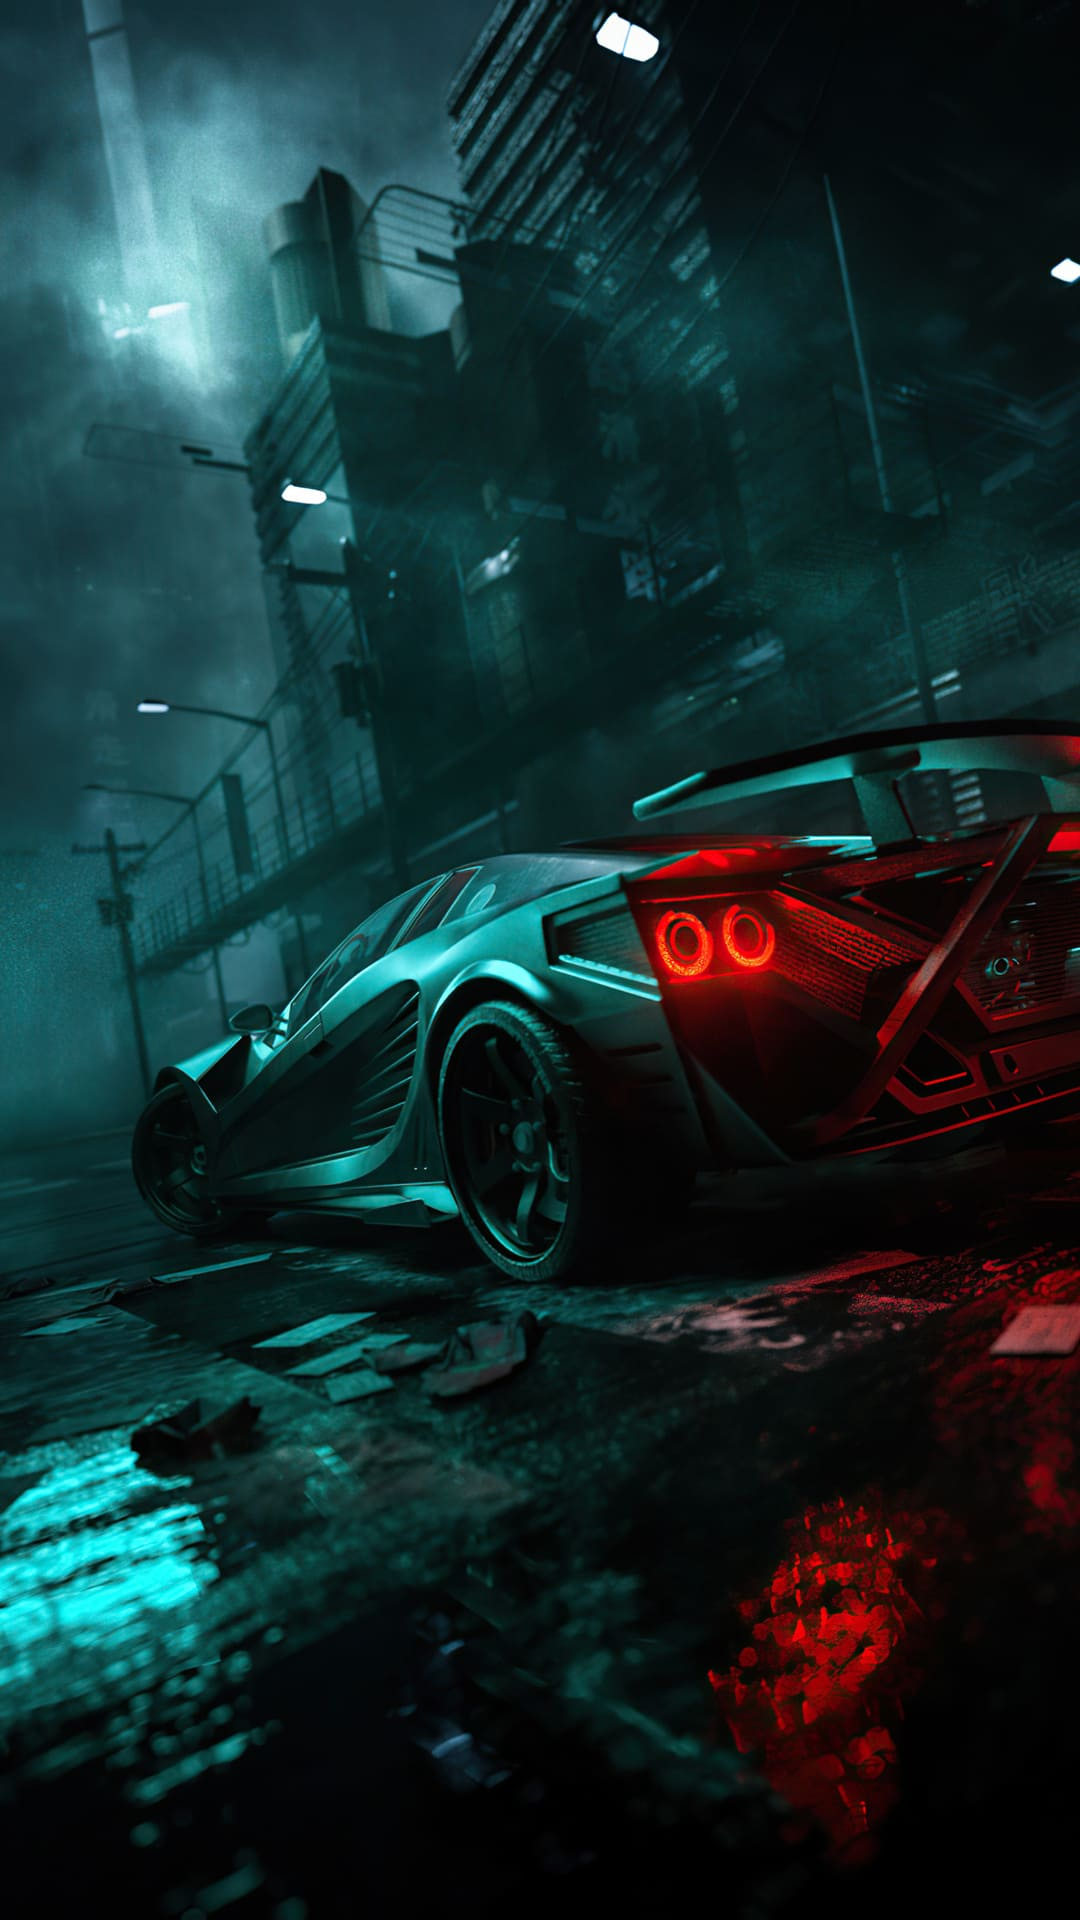 You can download wallpapers on a mac i. Cool Cars Wallpapers Getty Wallpapers